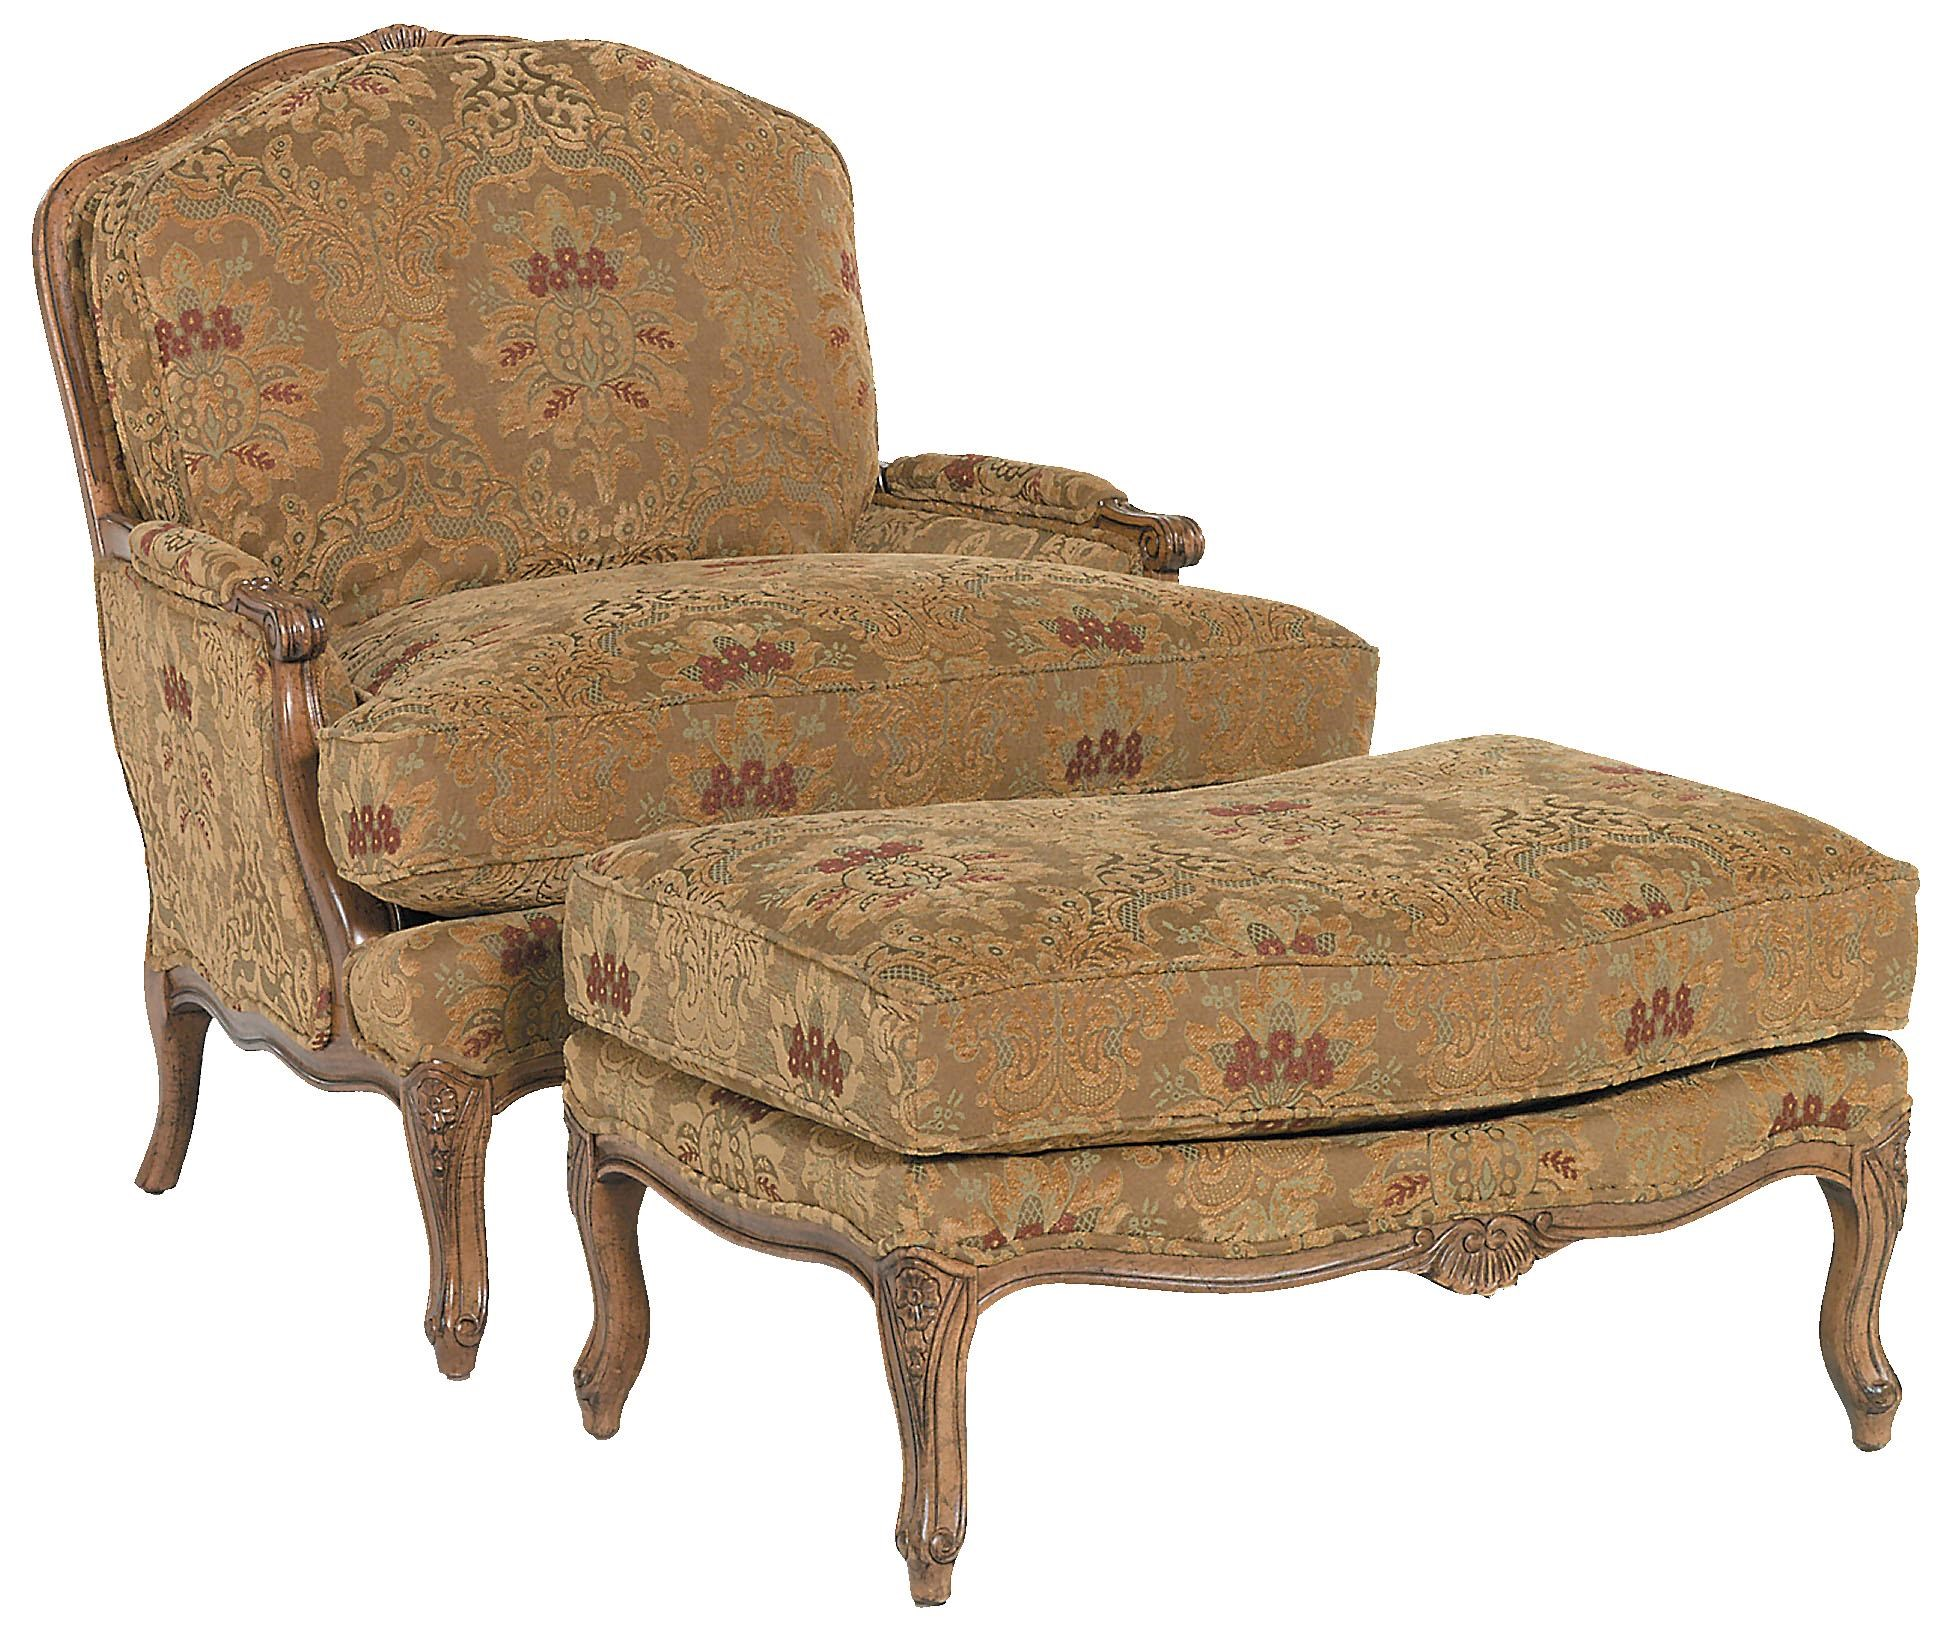 Fairfield Chairs Traditionally Styled Chair U0026 Ottoman Set